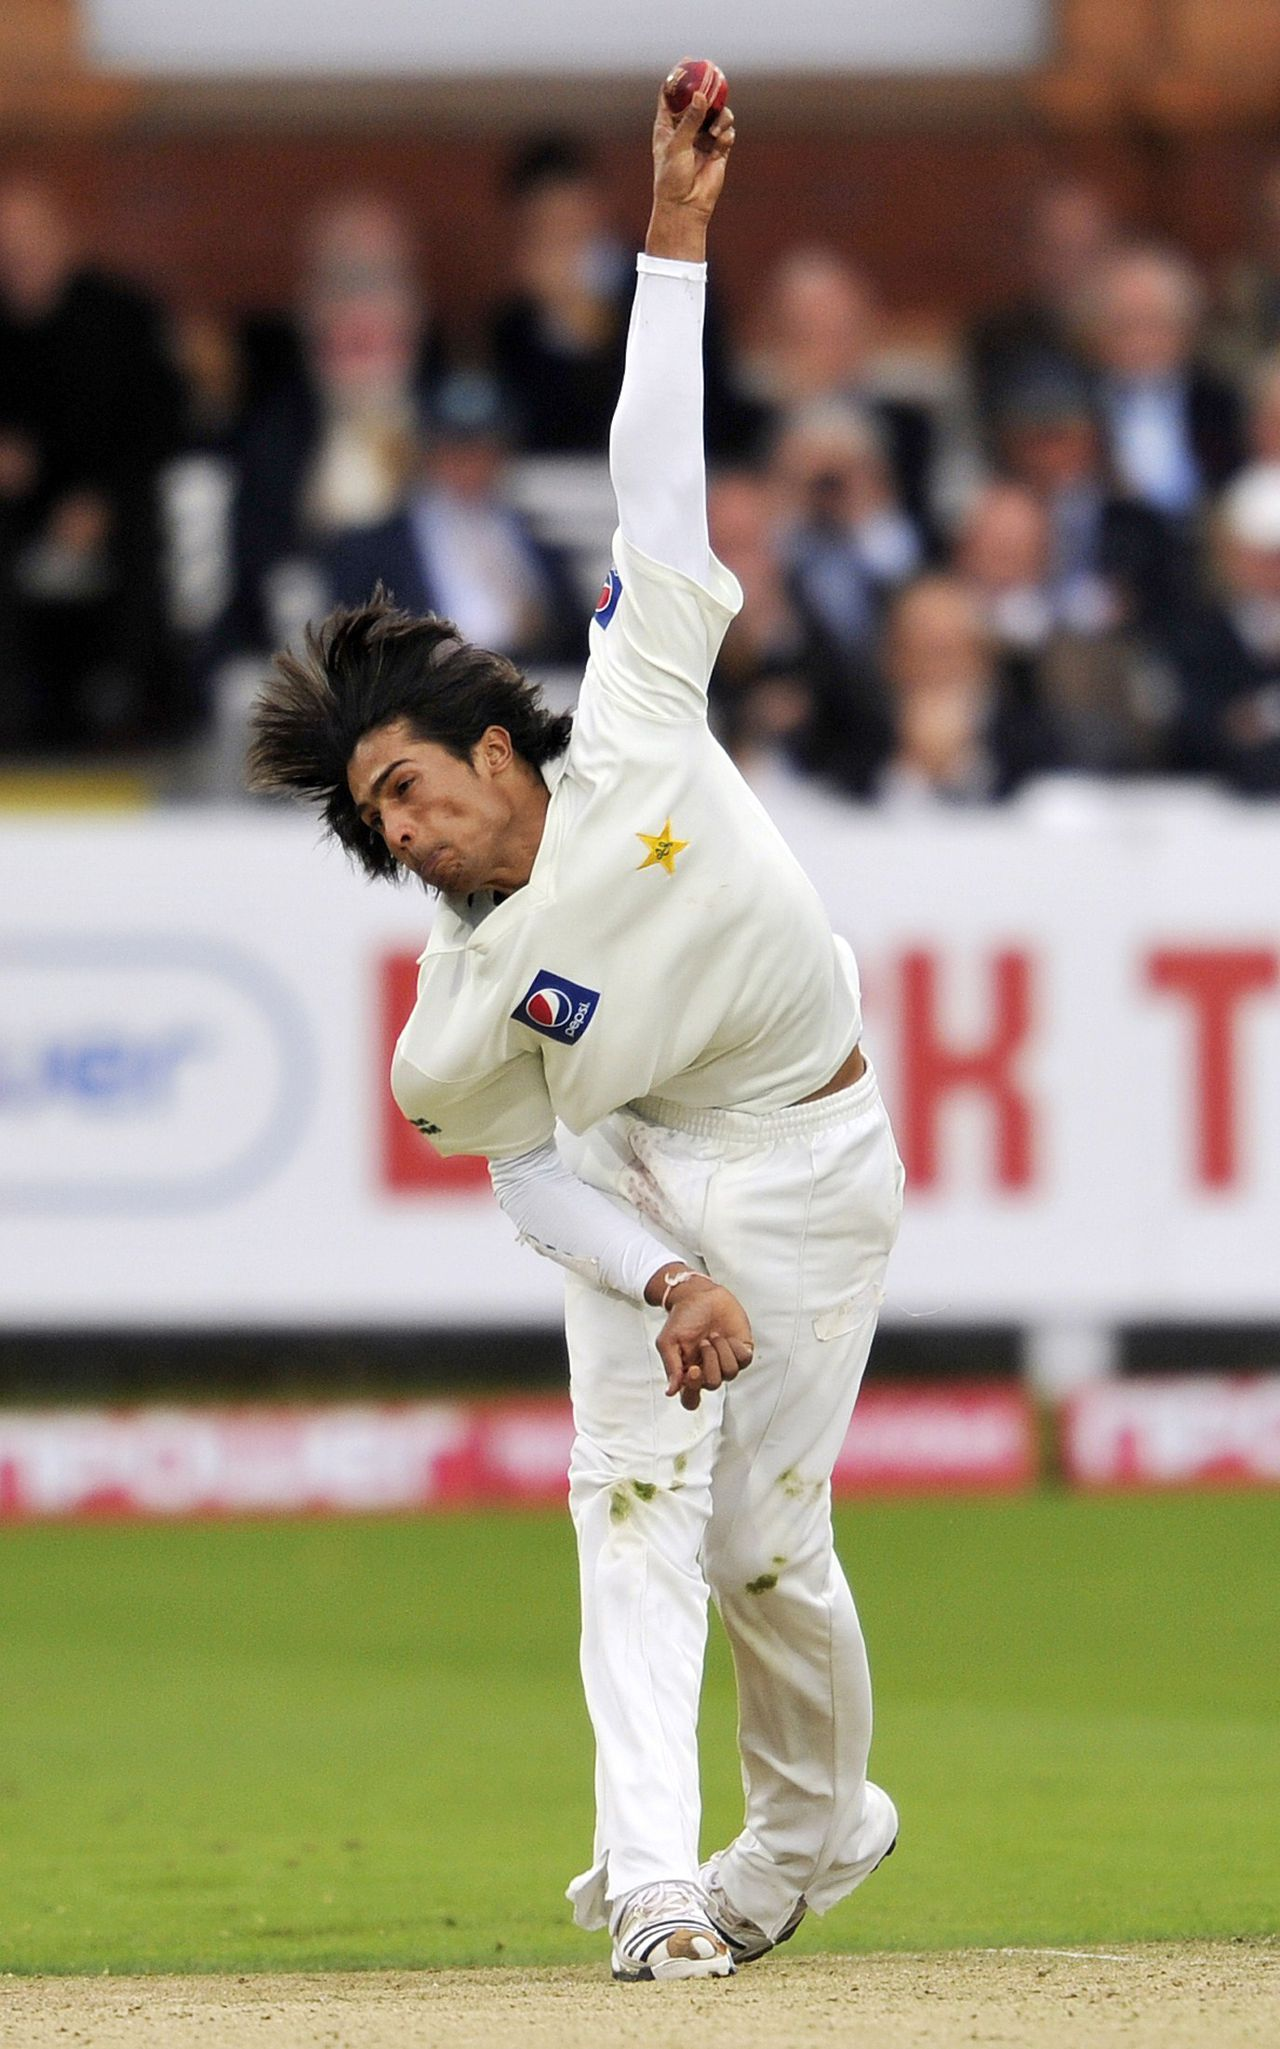 Pakistan's Mohammad Amir bowls on the second day of the fourth NPower Test cricket match between England and Pakistan at Lord's Cricket Ground in London, England, on August 27, 2010. AFP PHOTO/GLYN KIRK